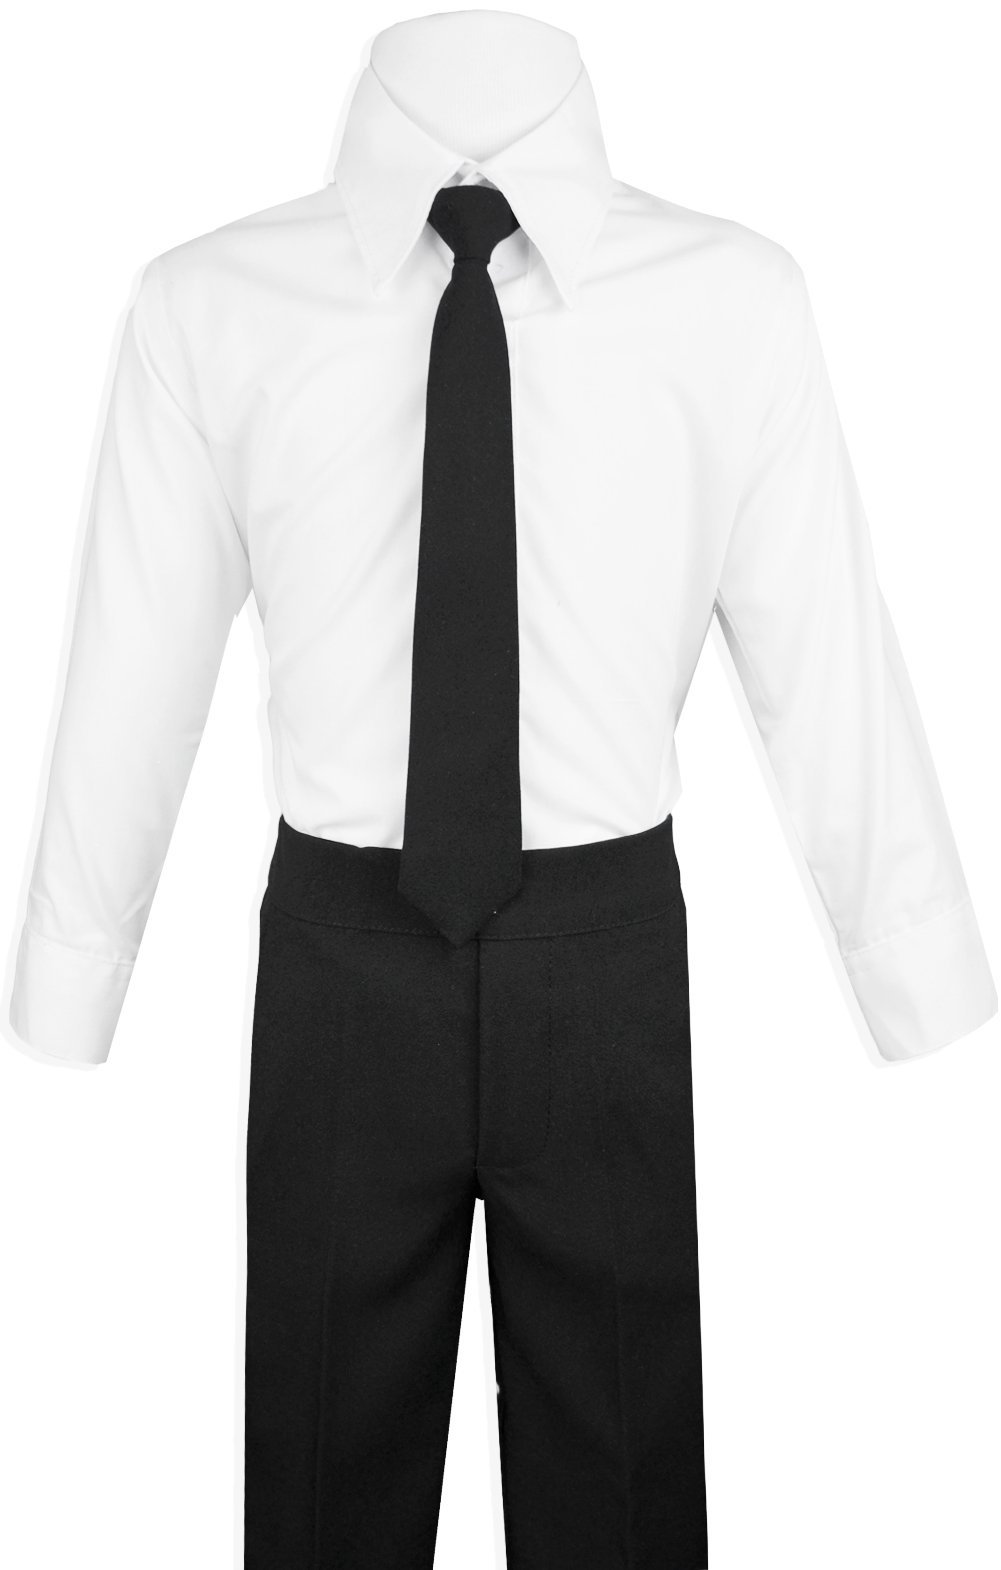 Boys Black Tuxedo Suit with Tie Young Boys Youth Size 16 by Black n Bianco (Image #3)